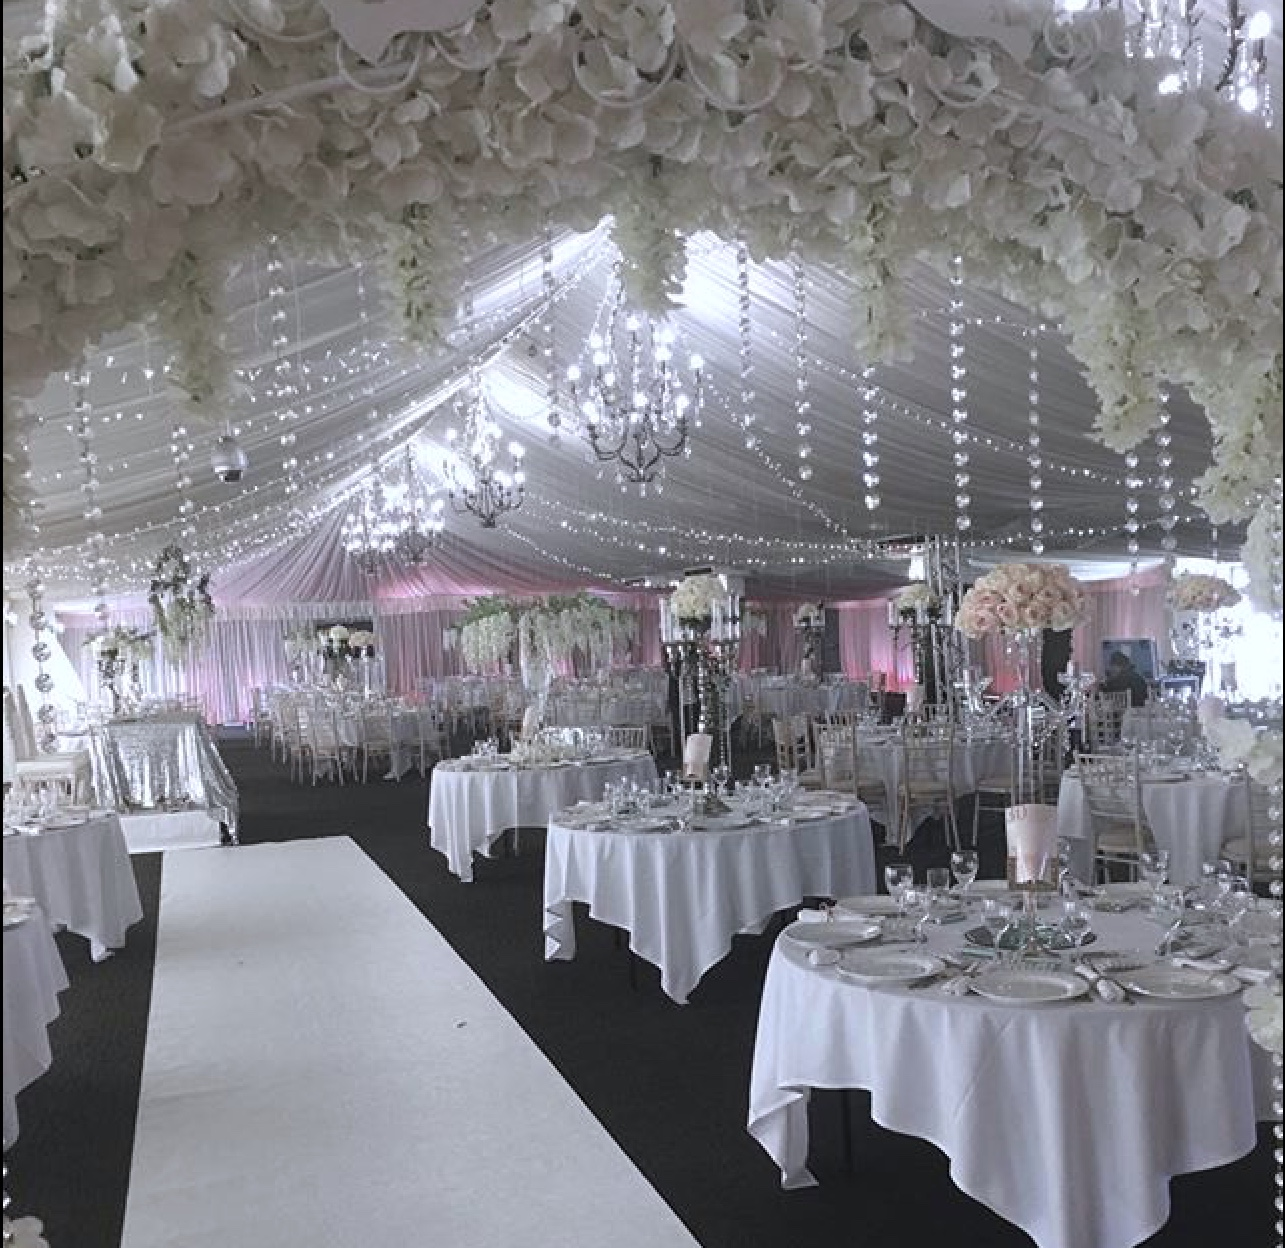 Venue styling